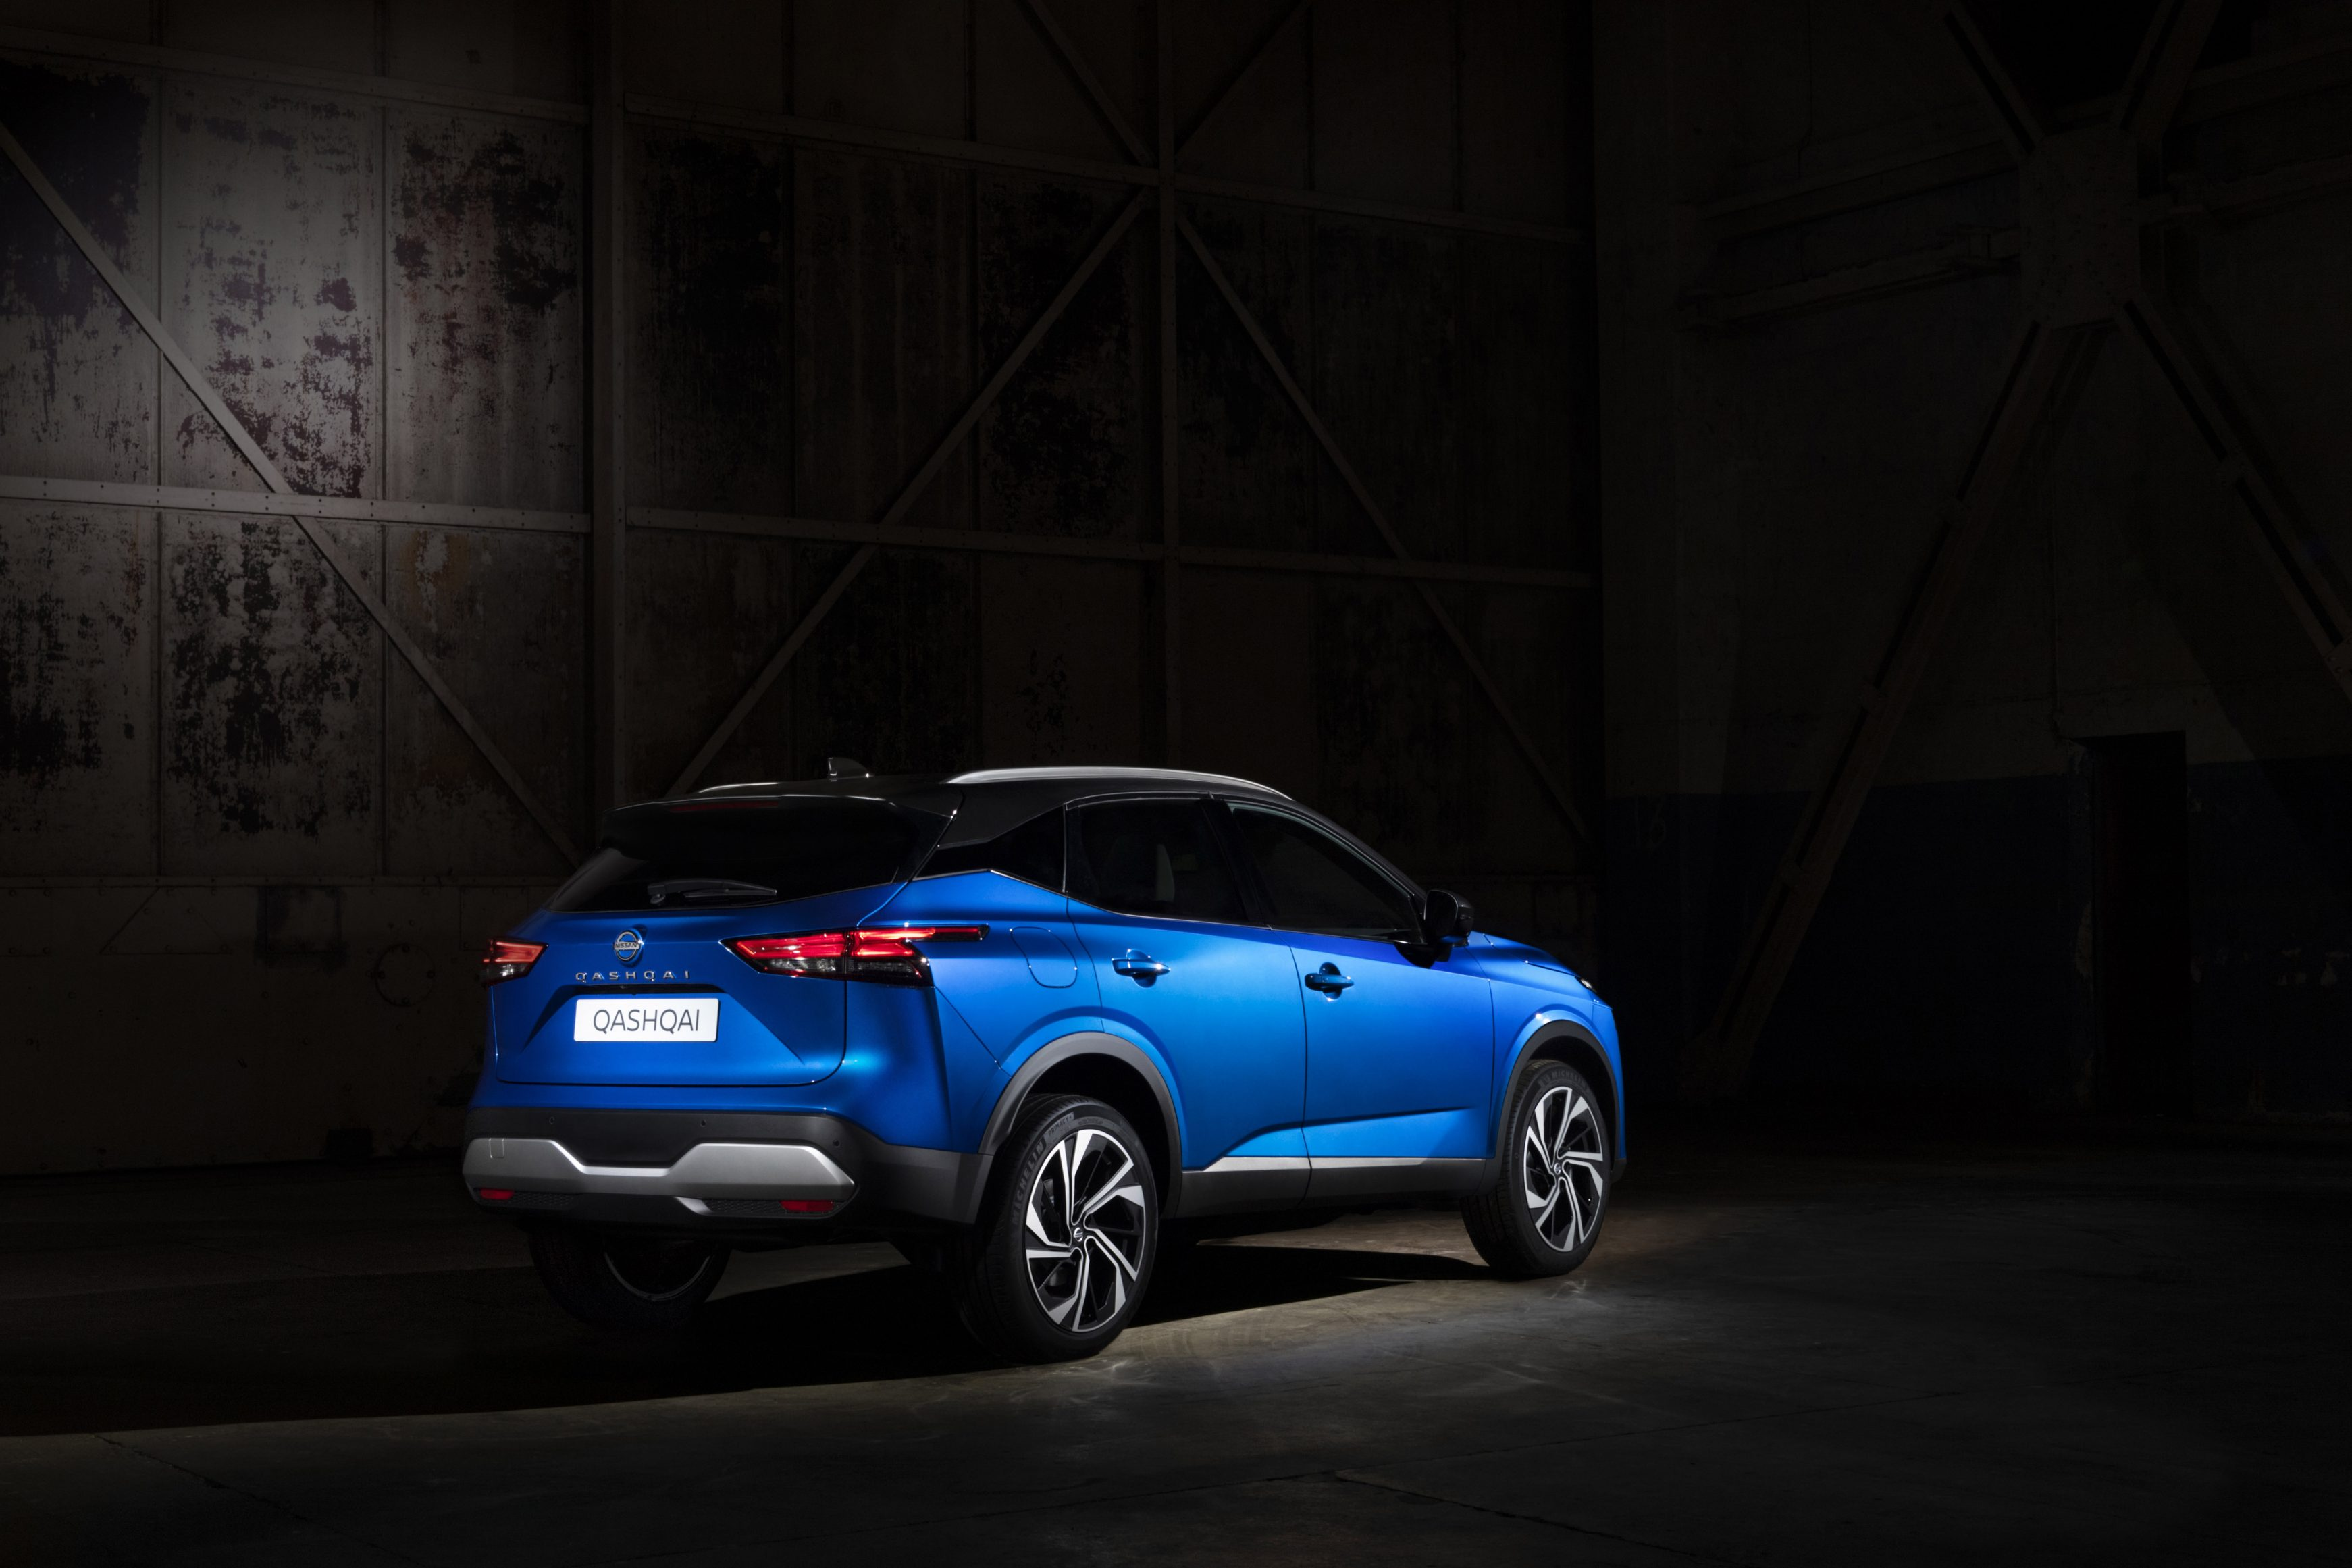 All-new 2021 Nissan Qashqai pictured in the dark